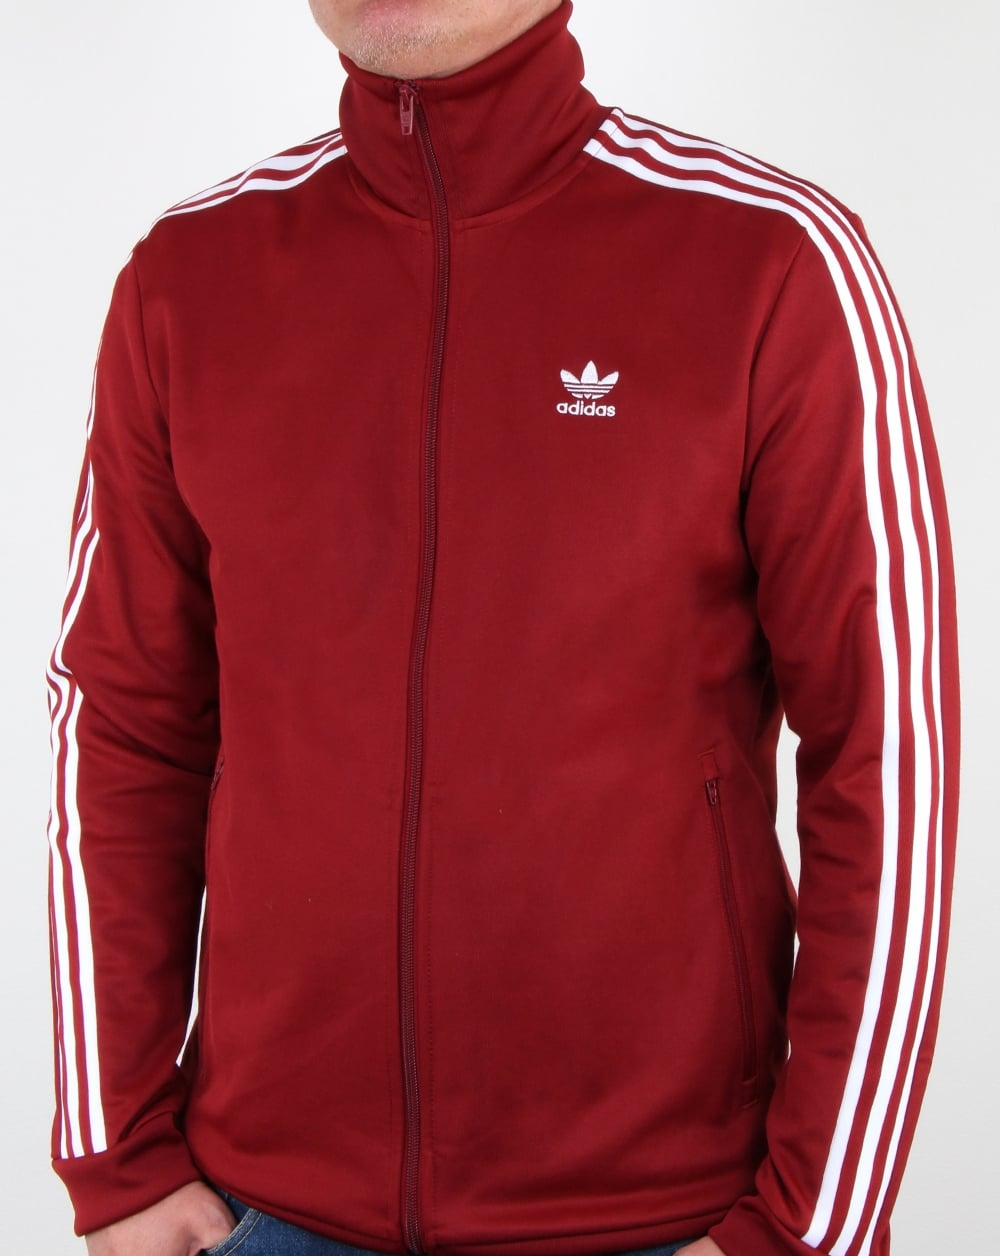 db4a03f33fc3 Adidas Originals Beckenbauer Track Top Rust Redjacket